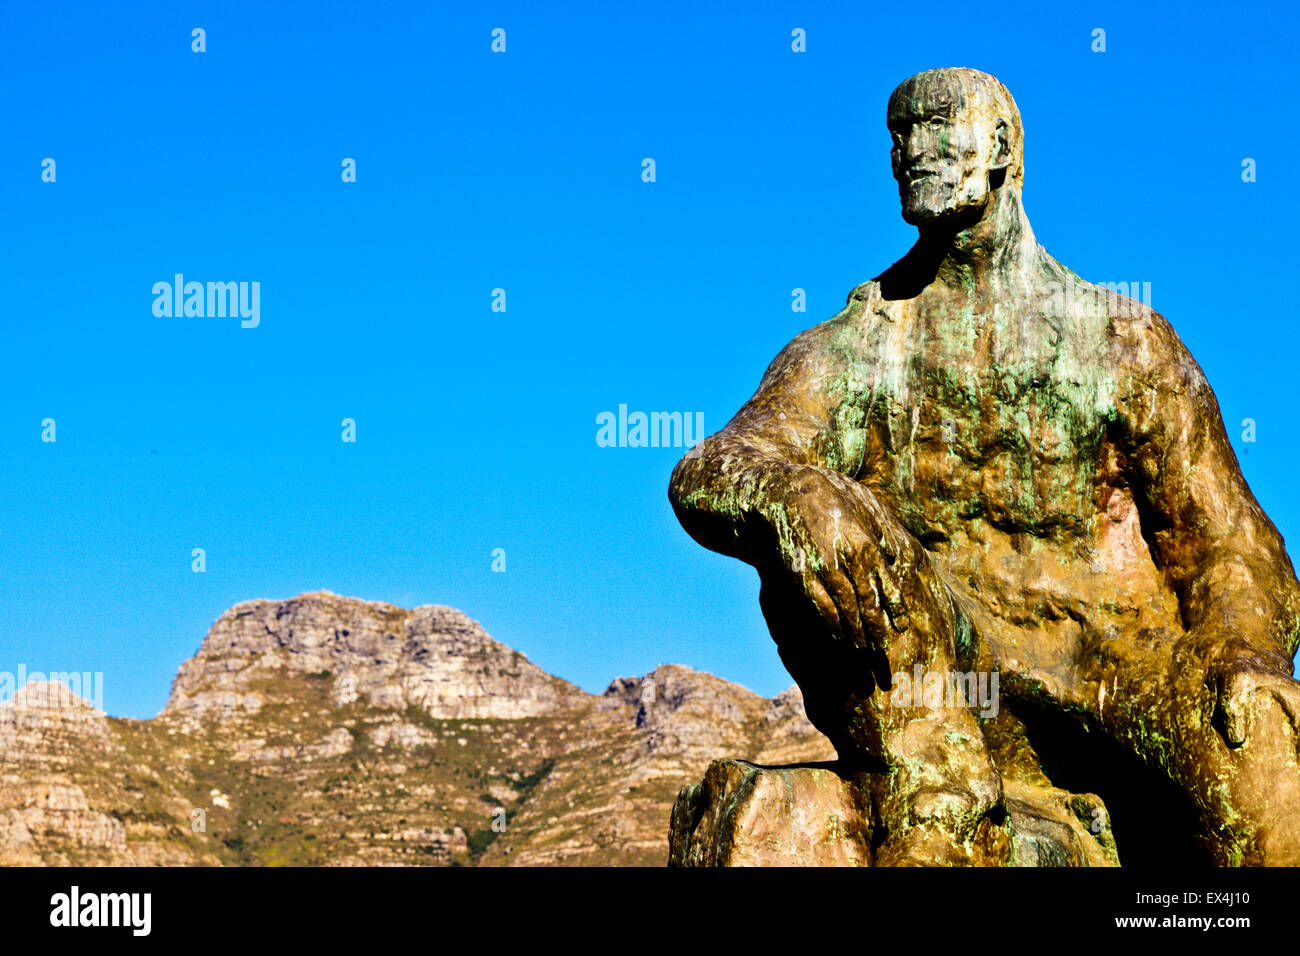 Jan Smuts statue in the Company's Garden, Cape Town, Western Cape, South Africa - Stock Image